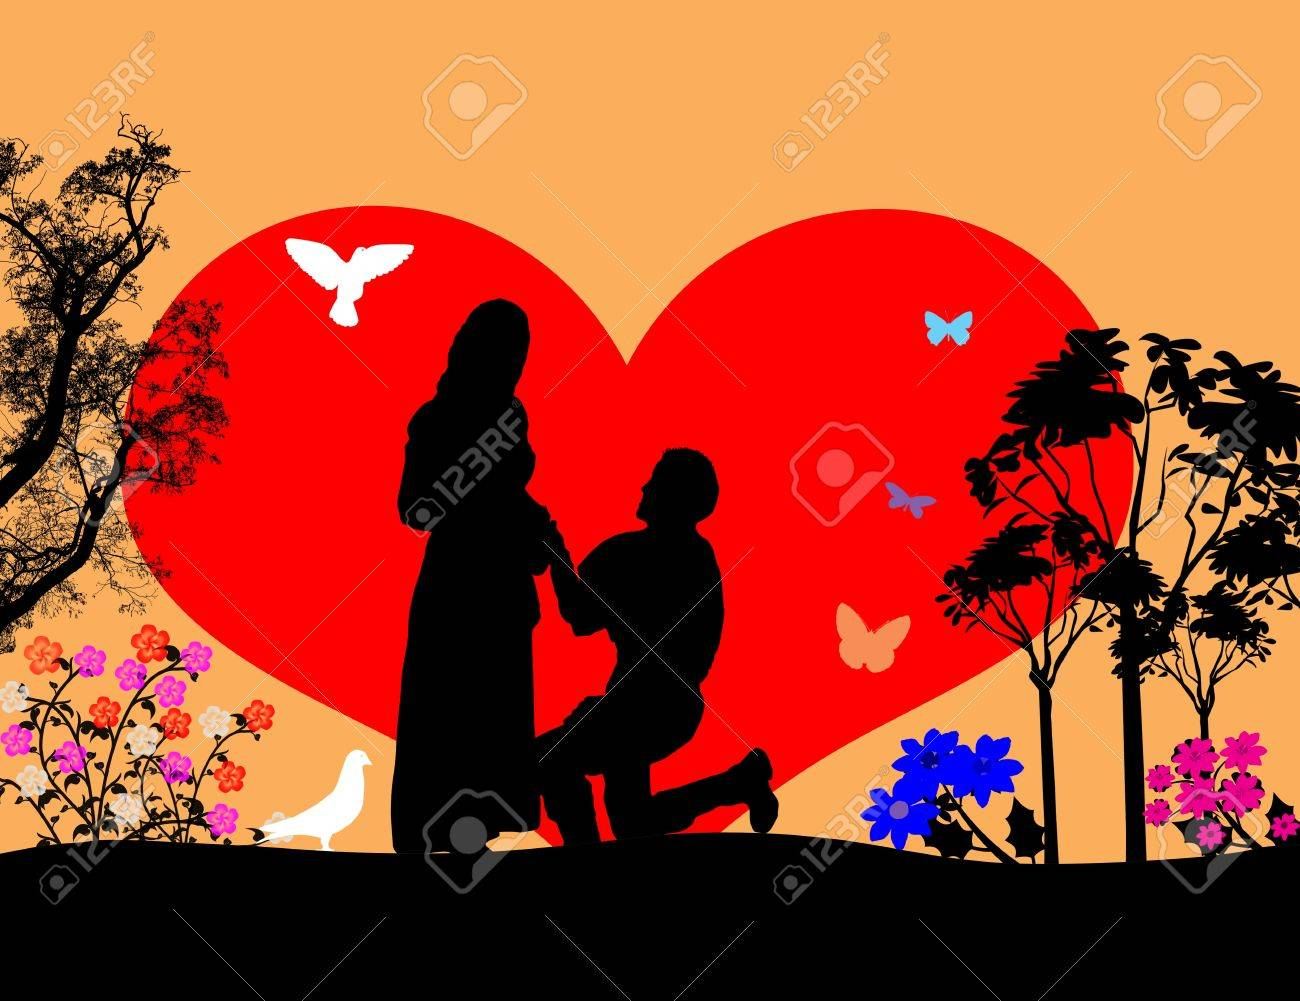 A young man  kneel and woo the girl in beautiful landscape silhouette, illustration Stock Vector - 17590580